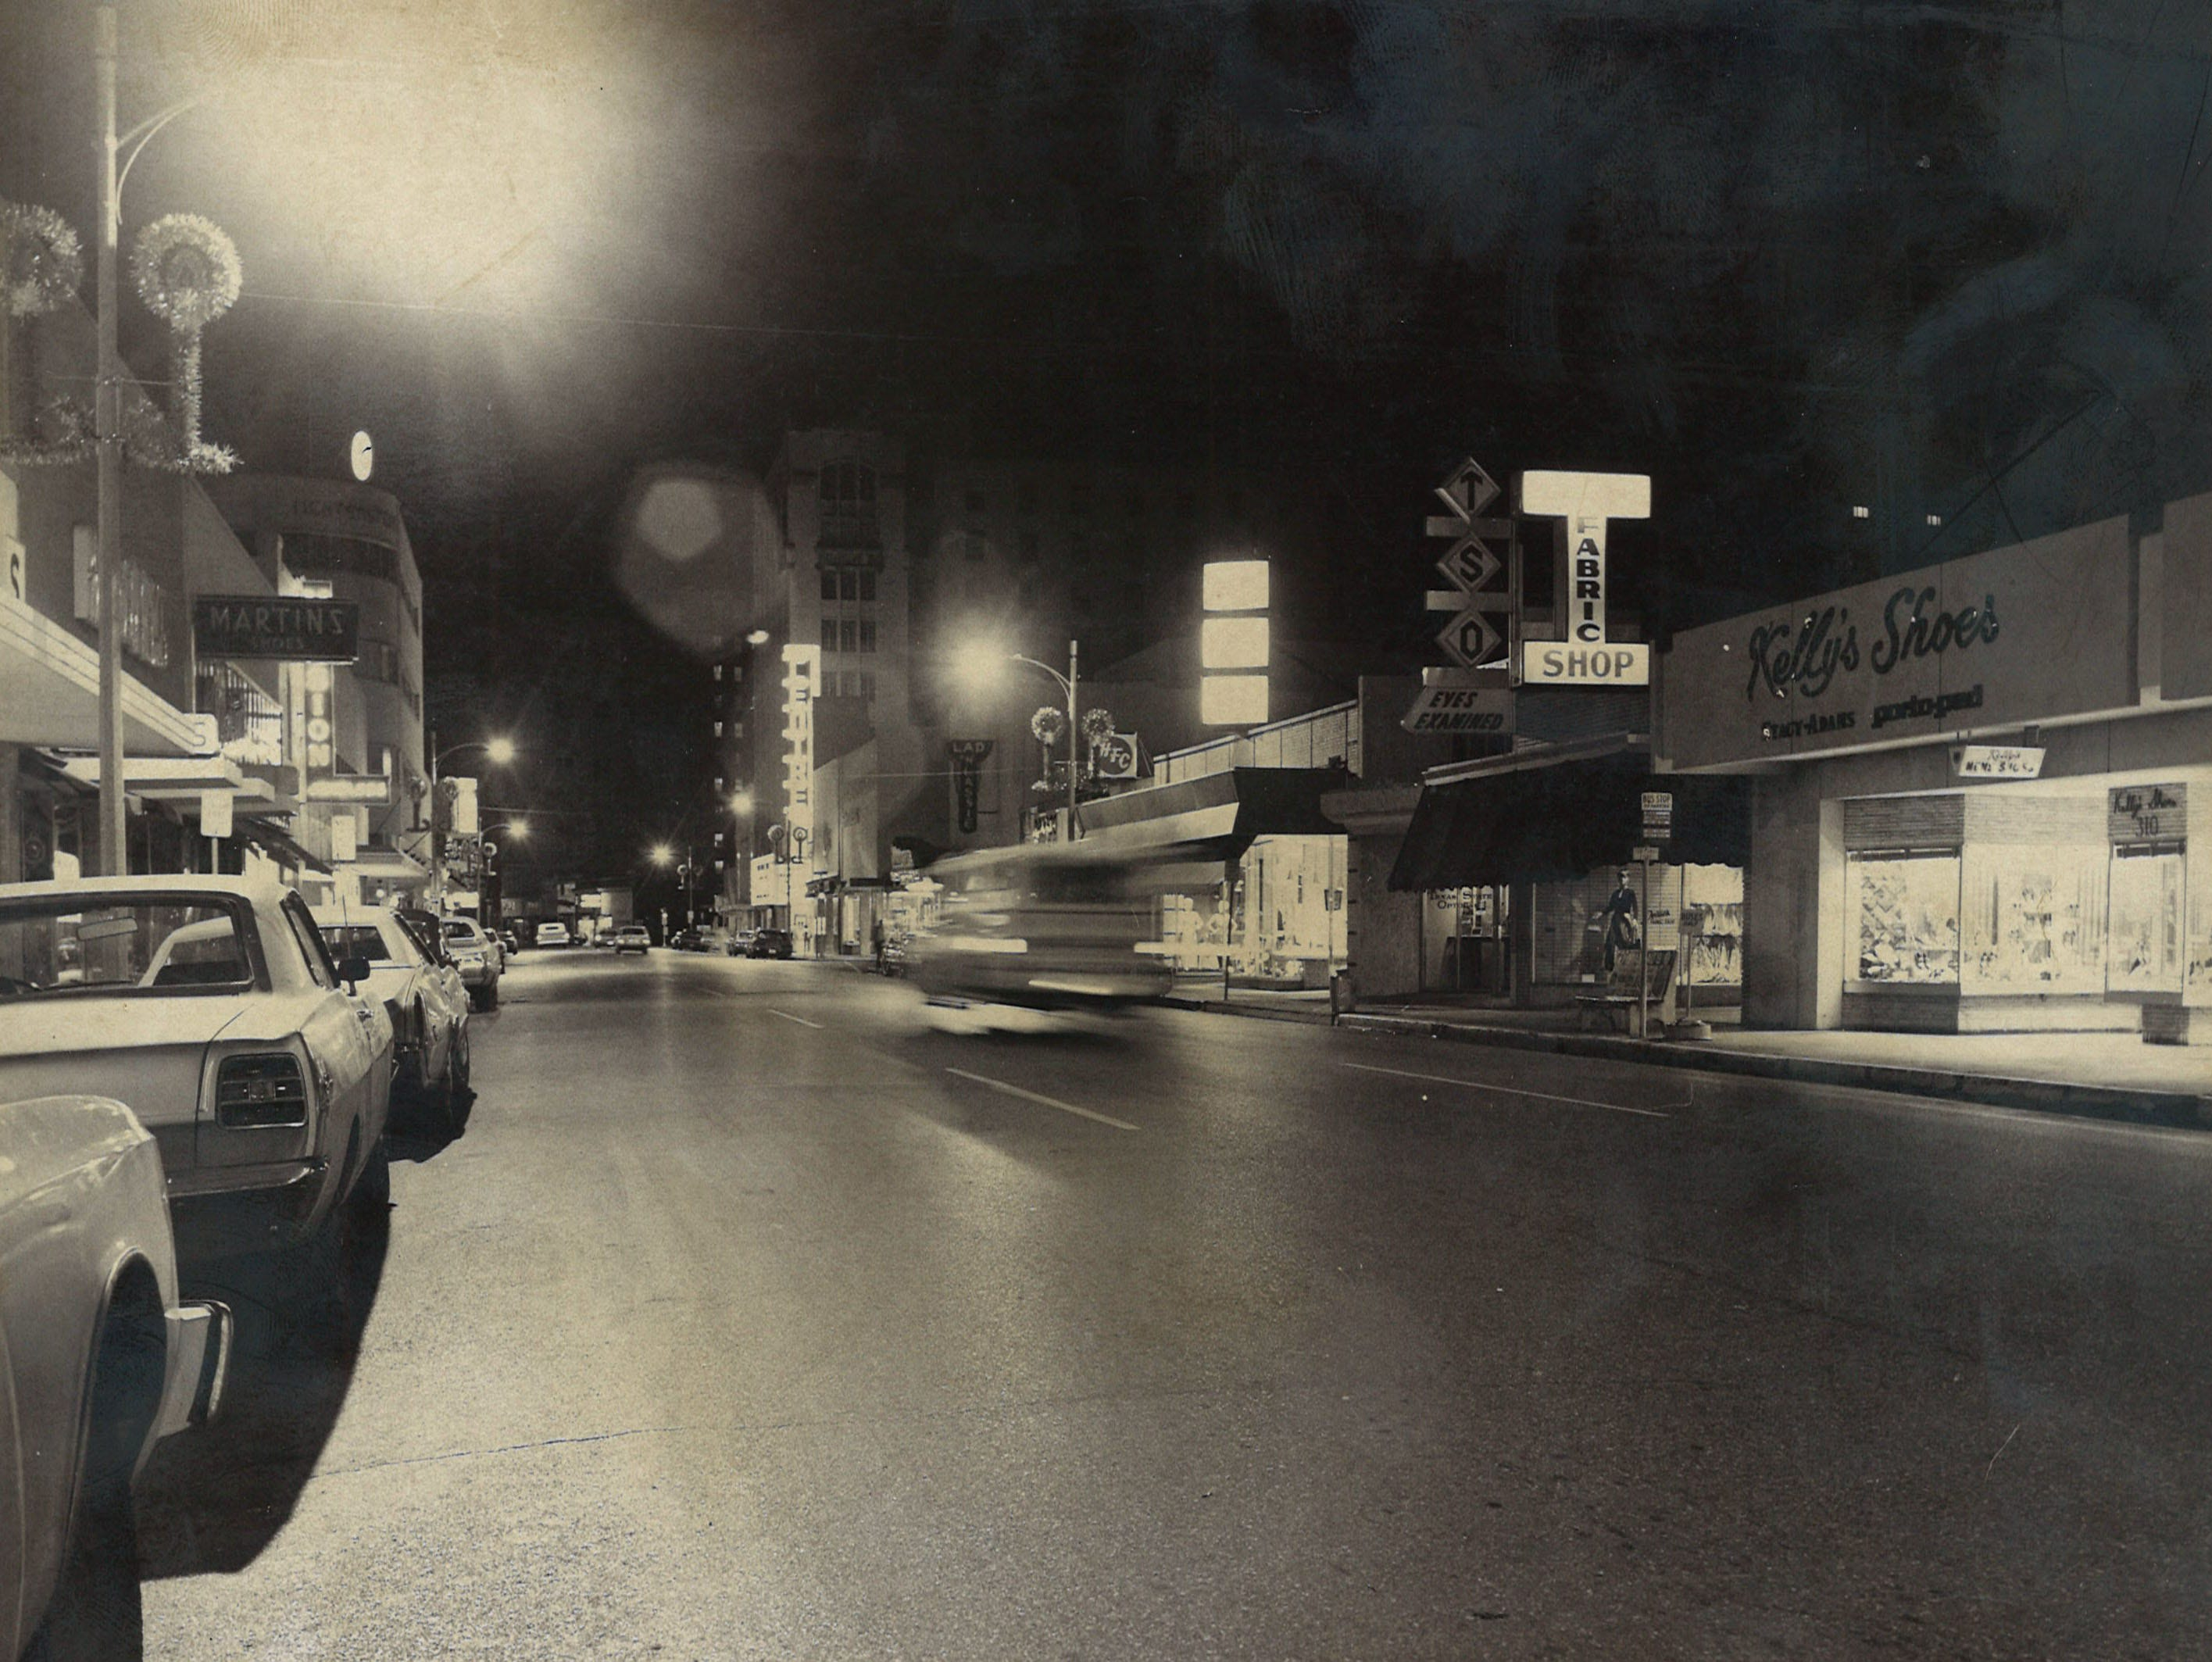 Chaparral Street at night in downtown Corpus Christi in 1973.